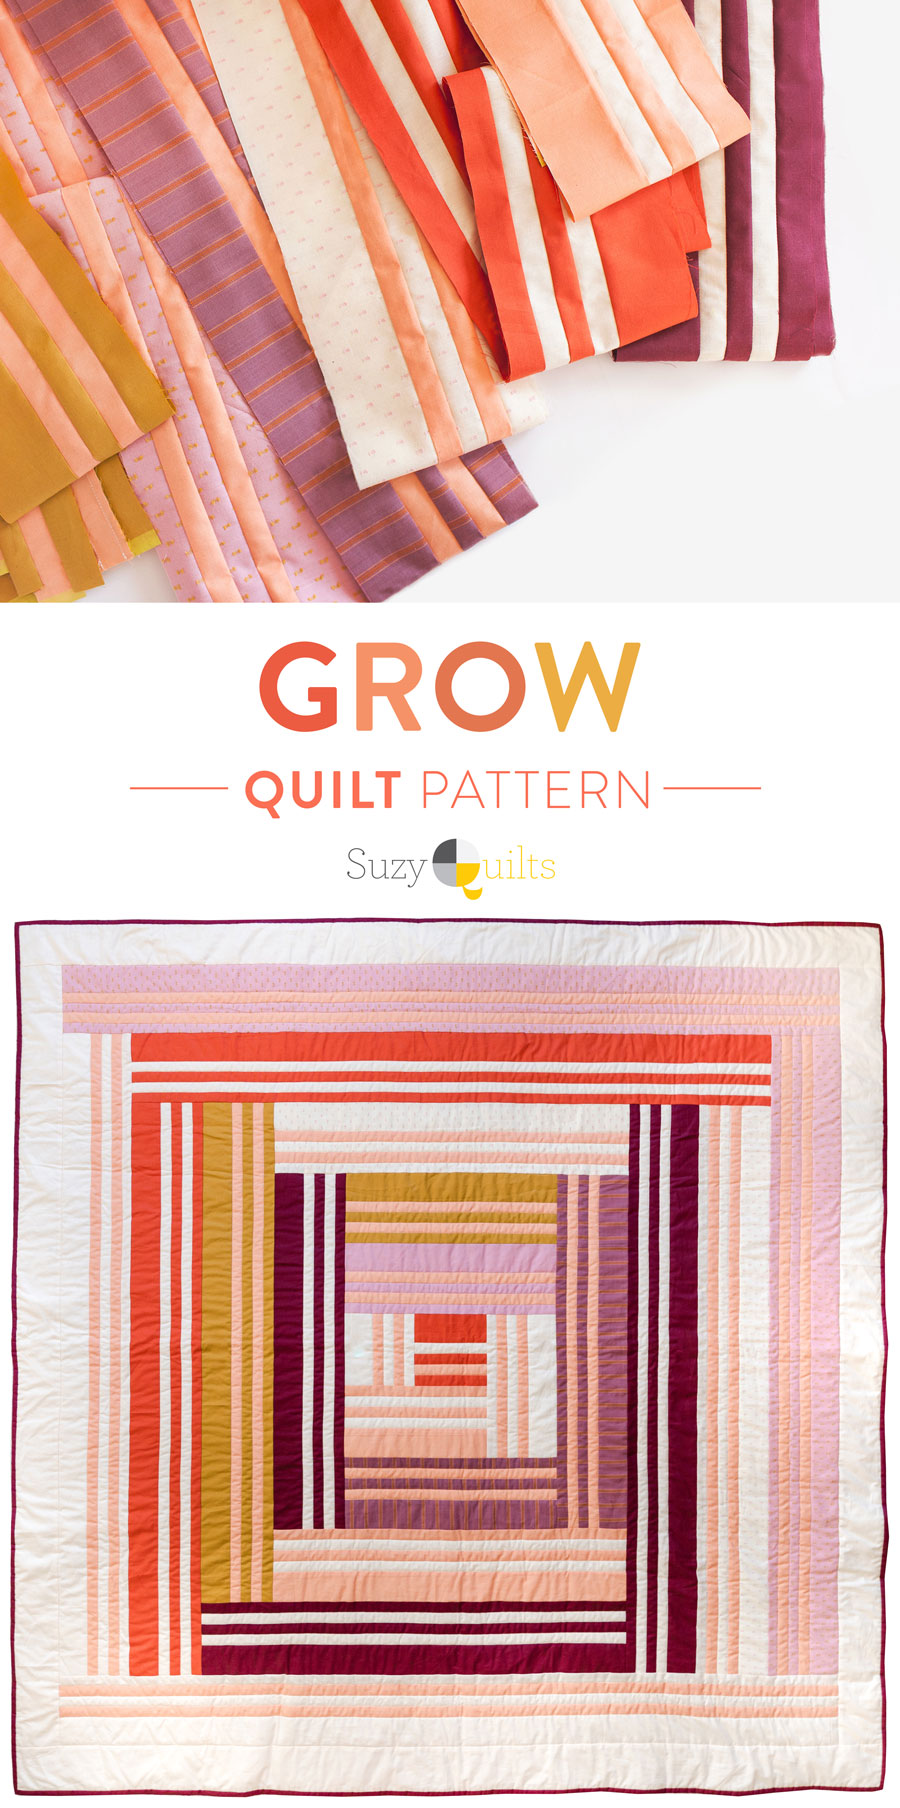 The Grow quilt pattern focuses on strip piecing – a simple quilting technique that creates a beautiful modern design. Beginner Friendly quilt pattern. See lots of beautiful quilt examples! suzyquilts.com #modernquiltpattern